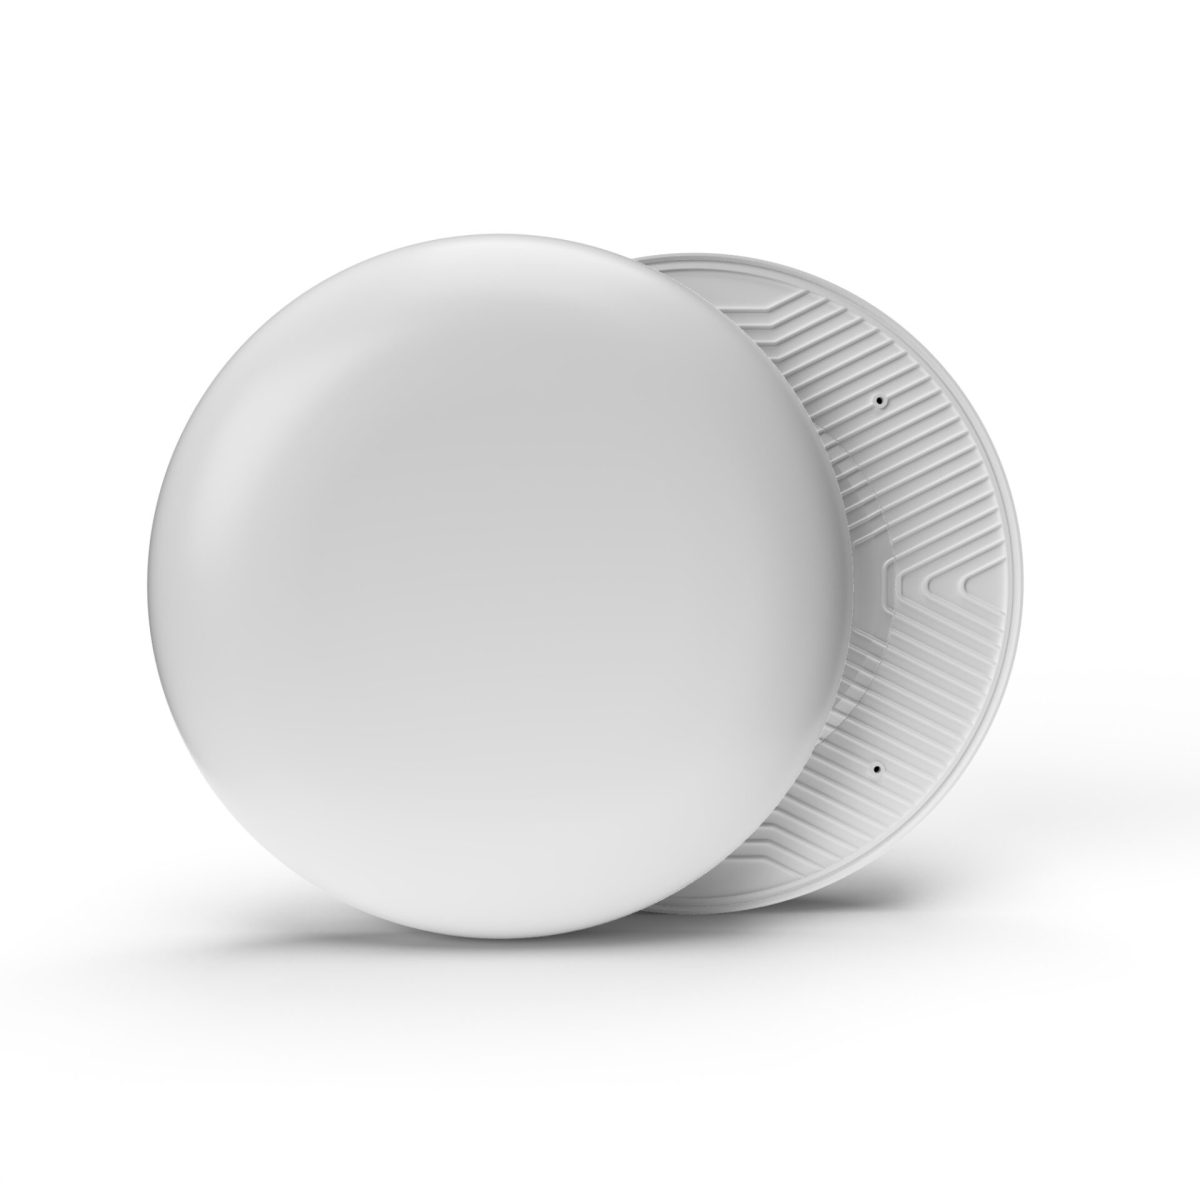 LED Panel by ECOSLIM Frameless Colour Changing Panel Light - Adjustable Bracket for Recess Mounting